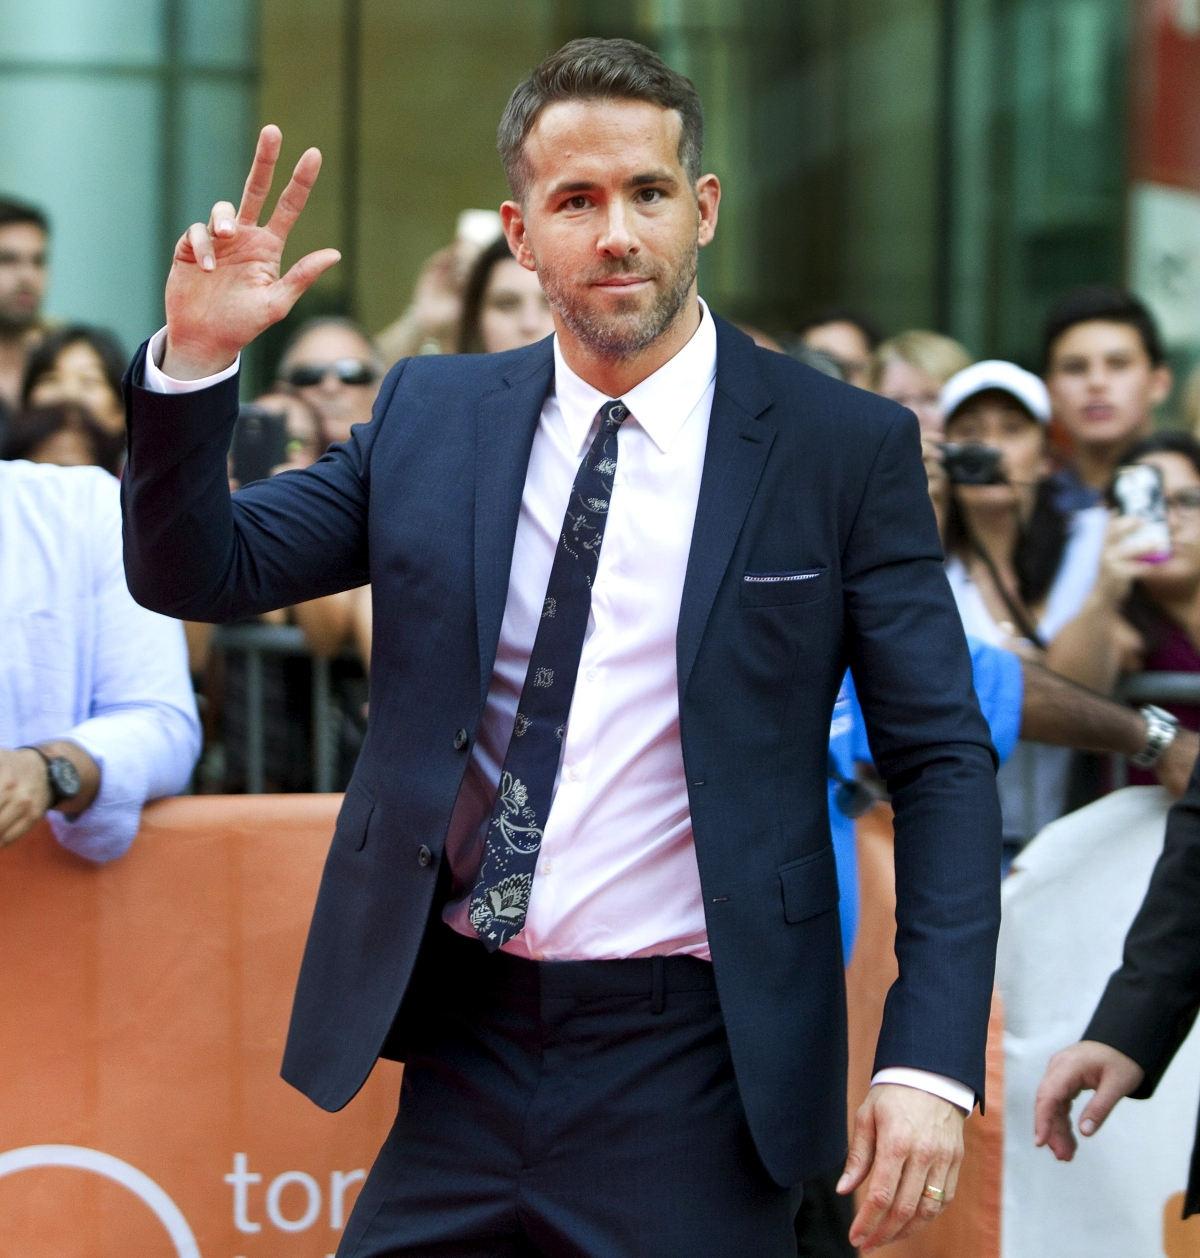 Deadpool Star Ryan Reynolds To Play Lead Role In Live